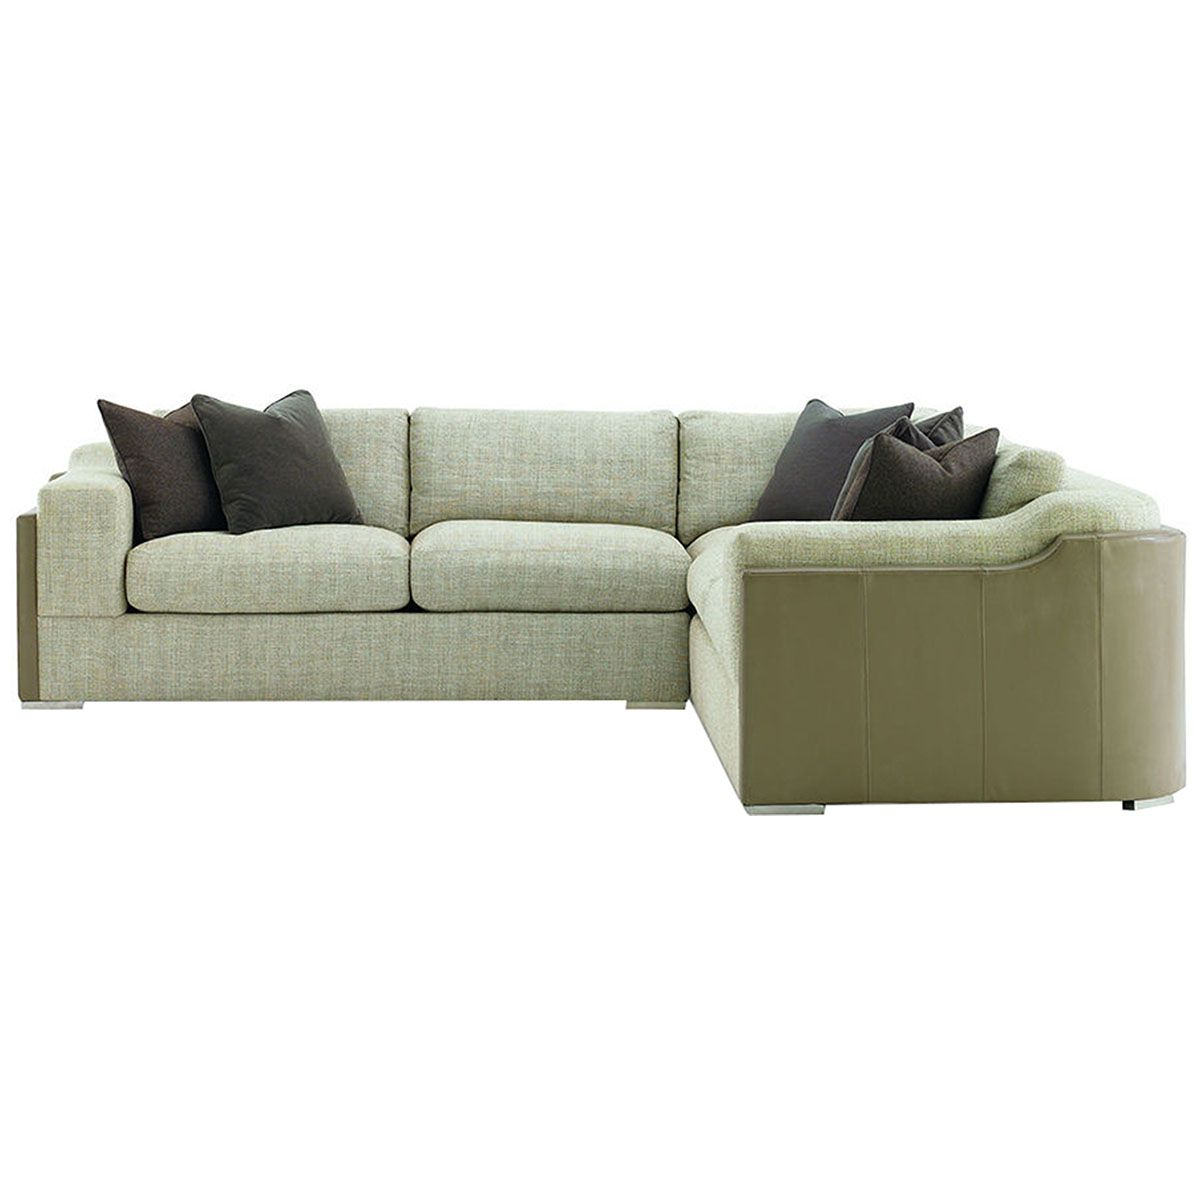 Caracole Social Network Armless Sectional Loveseat UPH-SECALS-02A  sc 1 st  Pinterest : armless sectional - Sectionals, Sofas & Couches